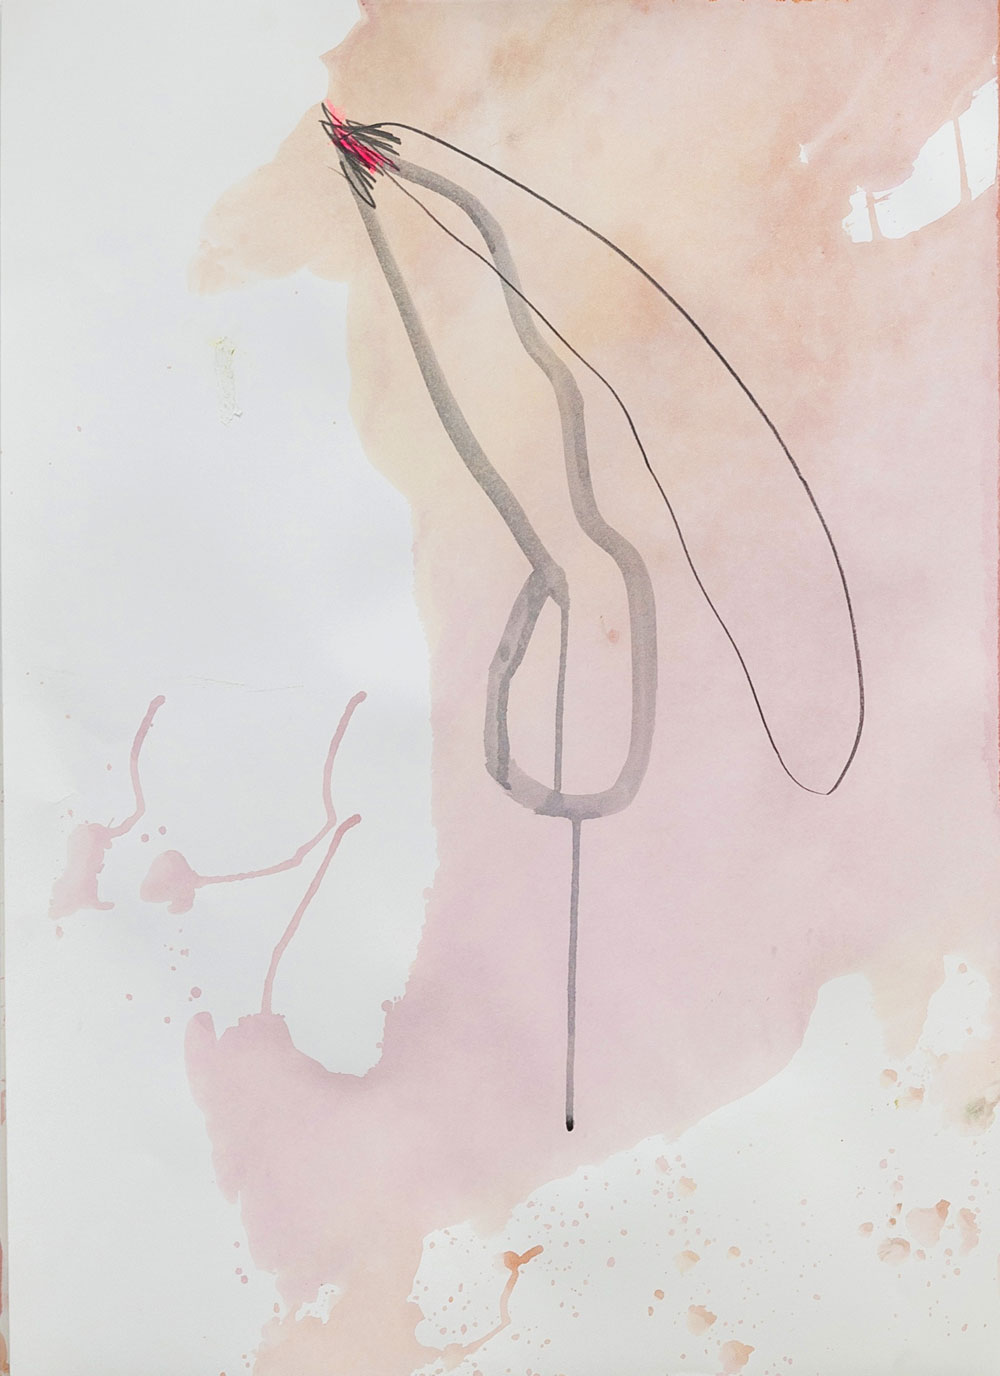 UNTITLED, 2011   pencil and acrylic on paper, 69x49cm